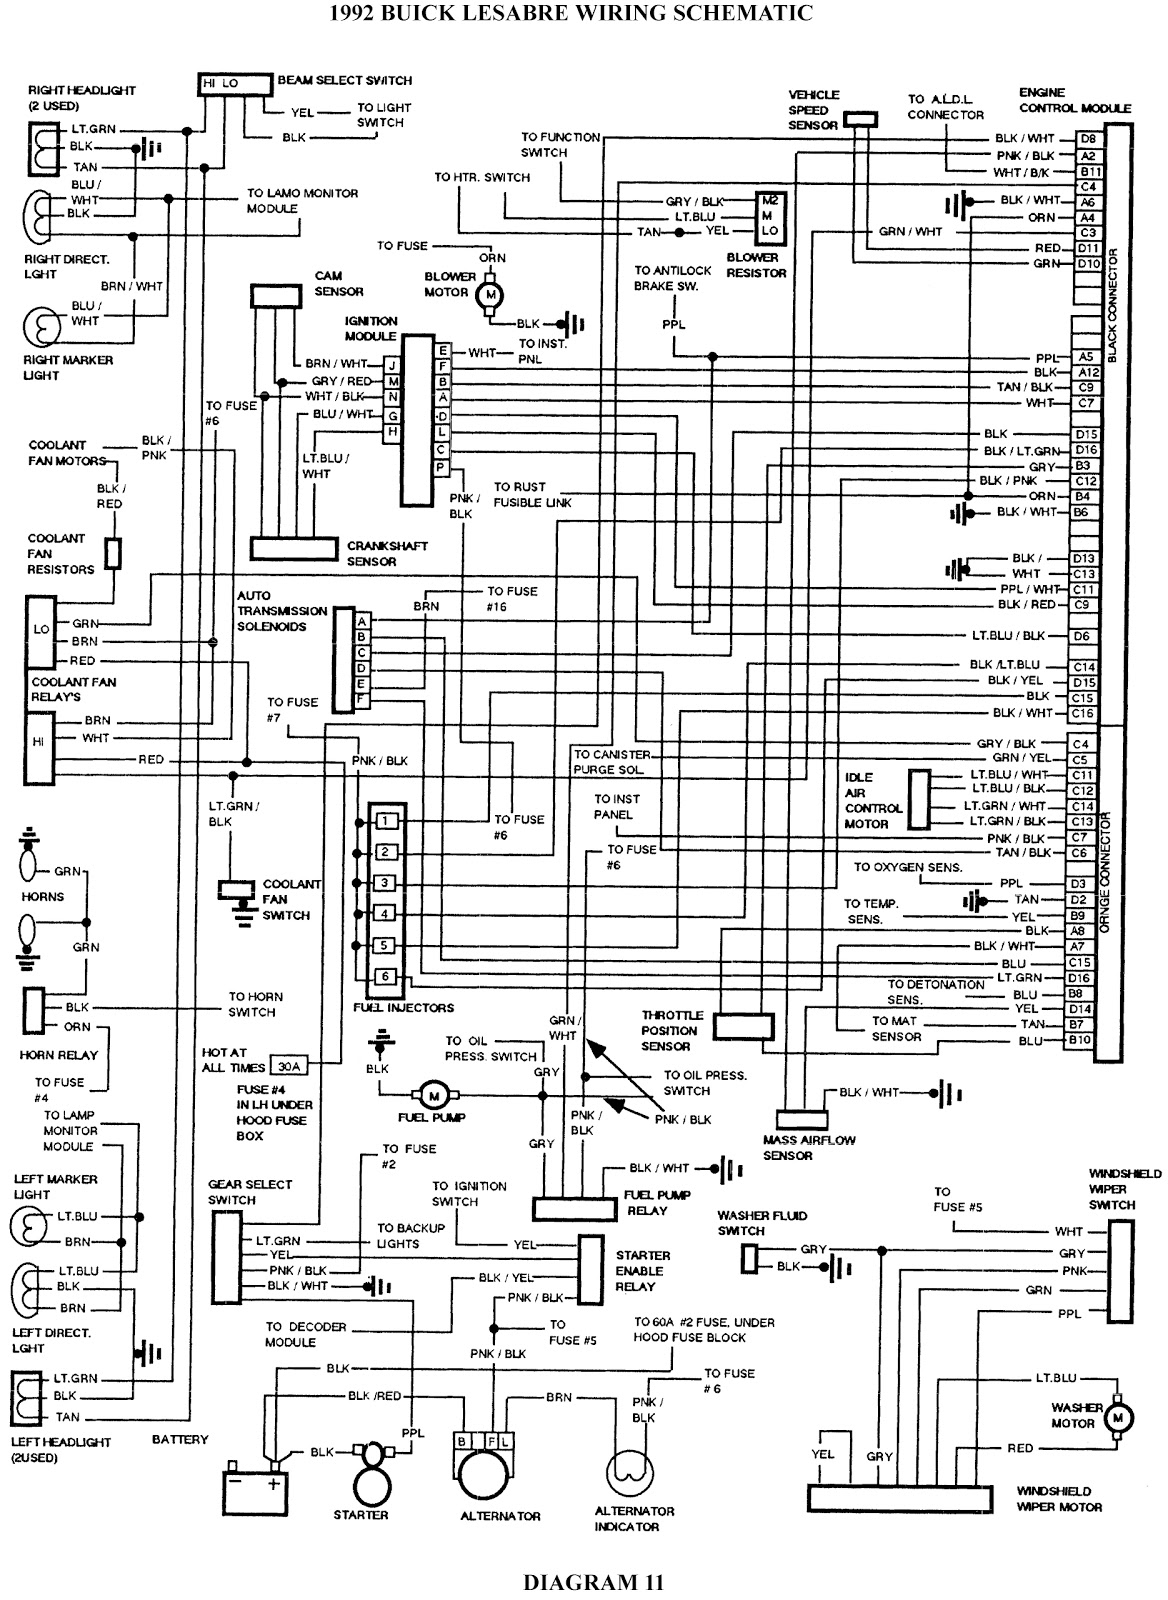 2000 buick lesabre ignition switch wiring diagram 1968 ford 2000 farm tractor ignition switch wiring diagram 1992 buick lesabre wiring schematic | schematic wiring ...